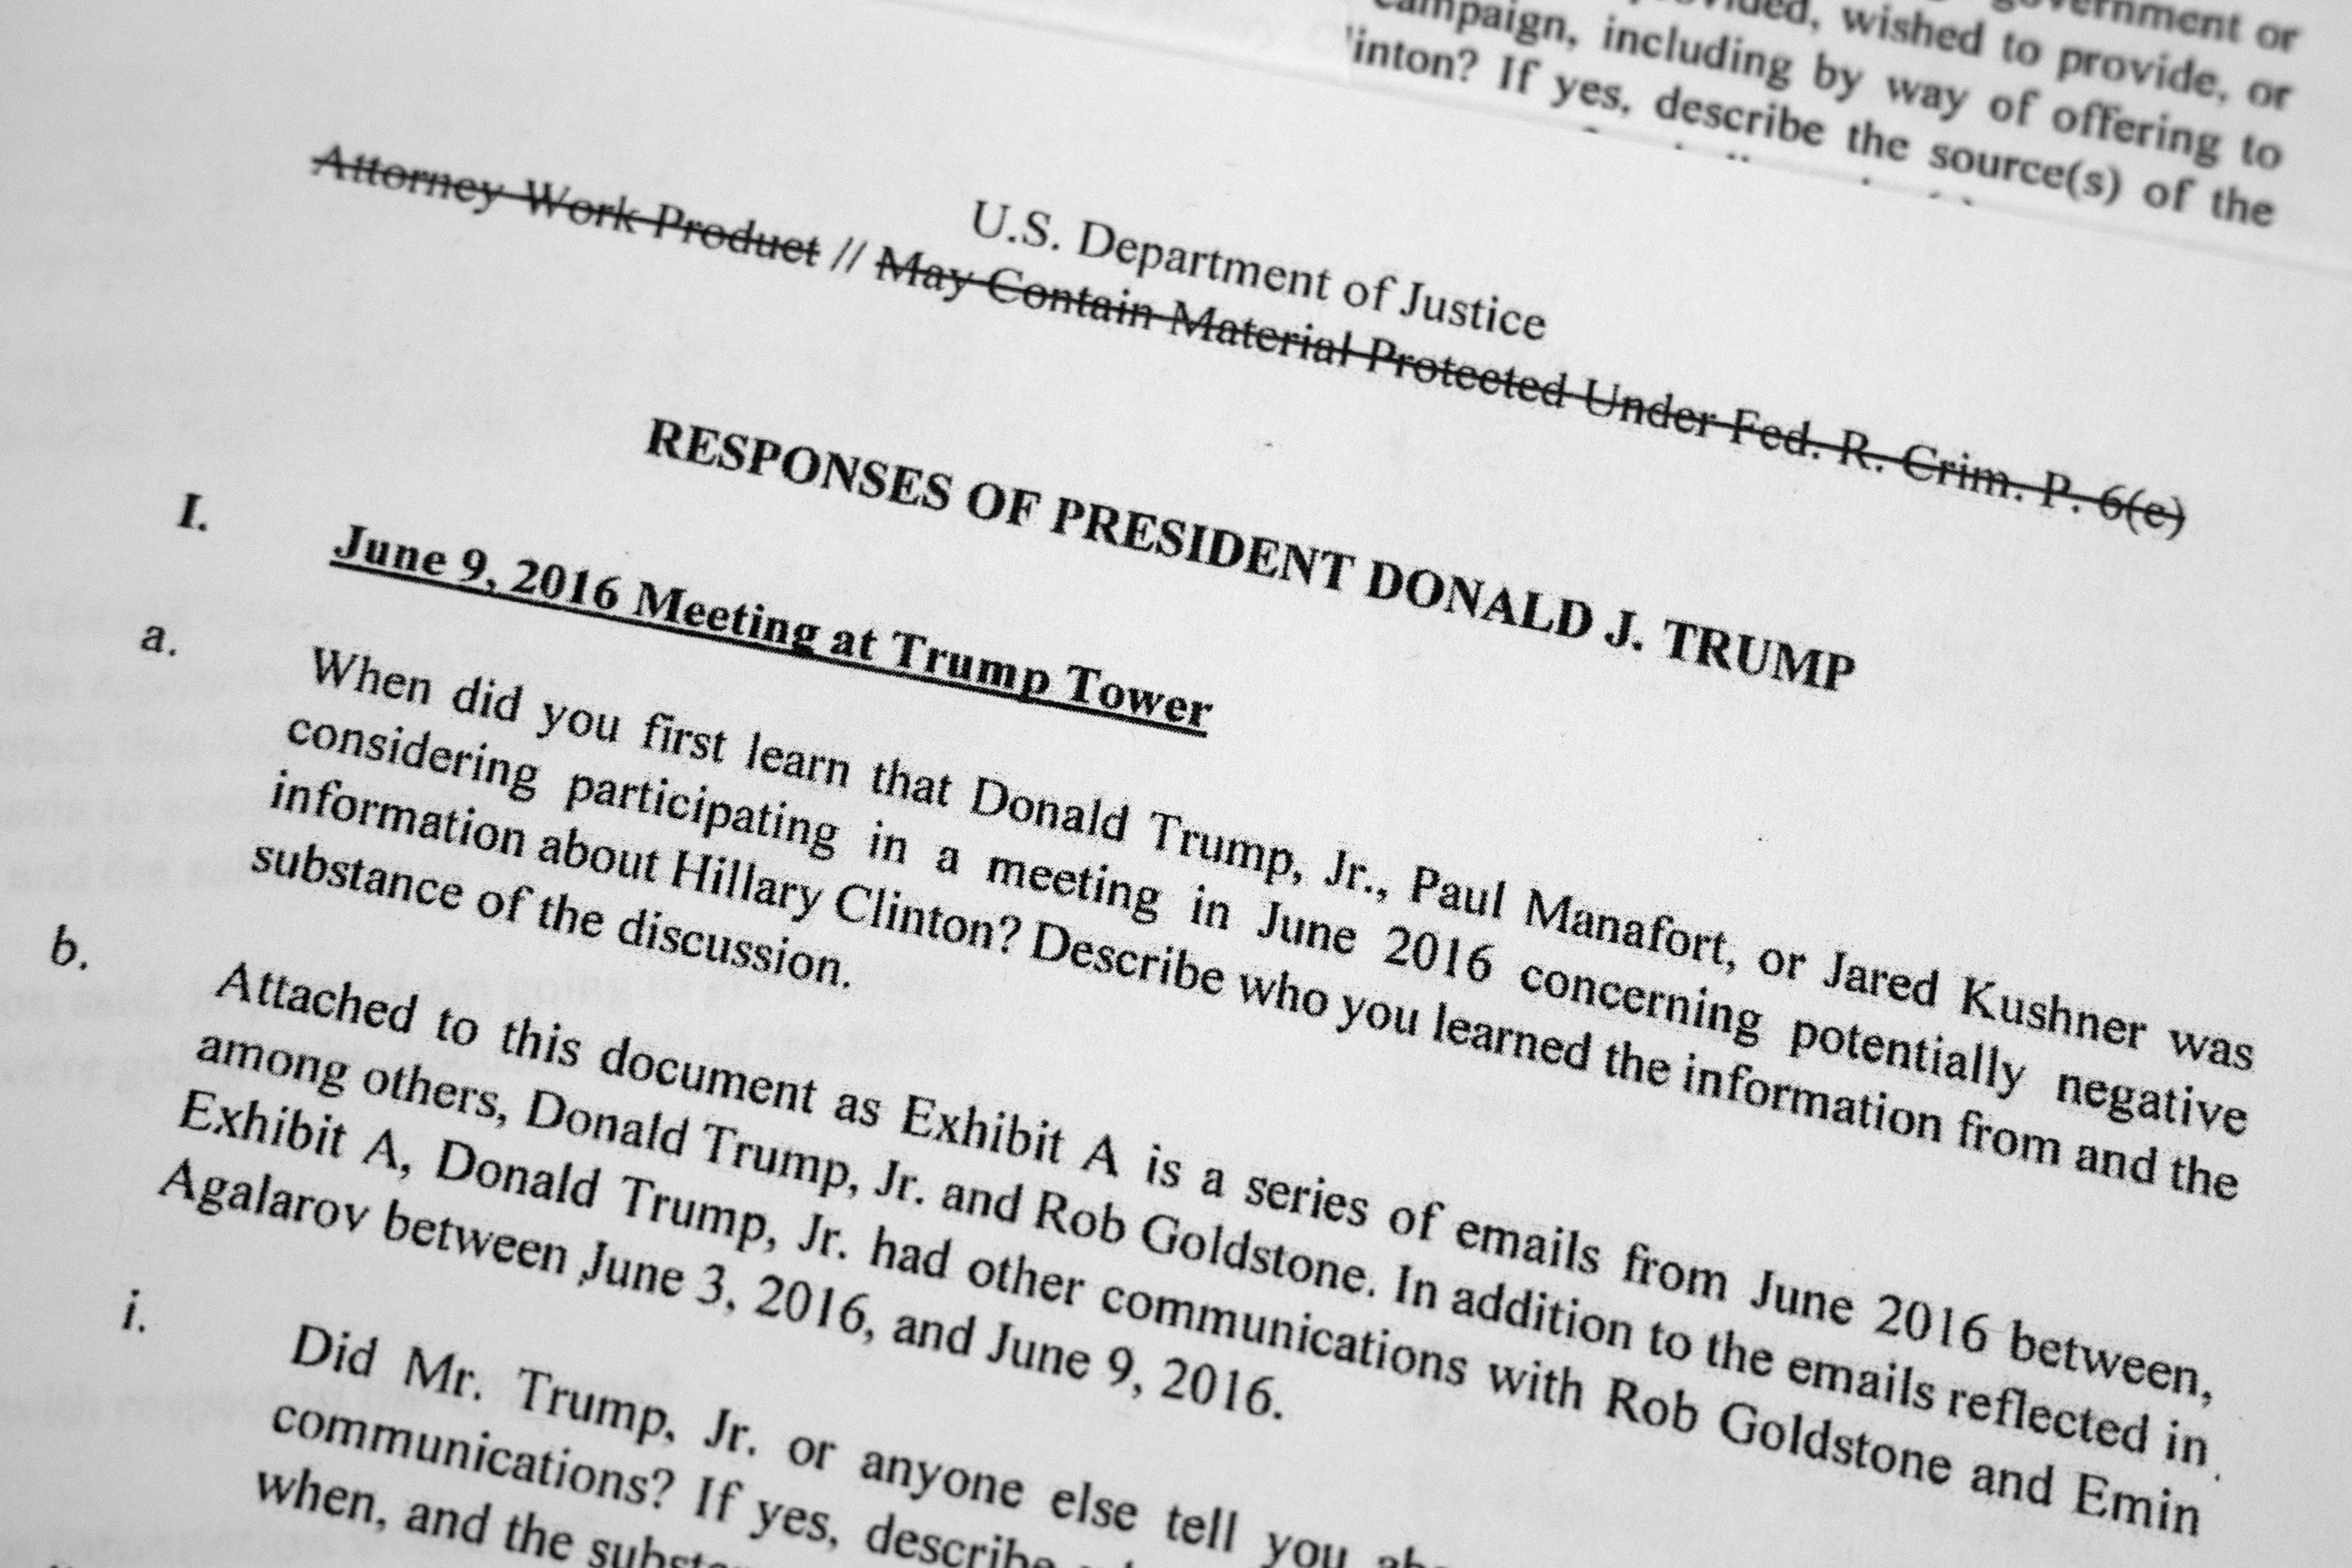 Full text of Mueller's questions and Trump's answers